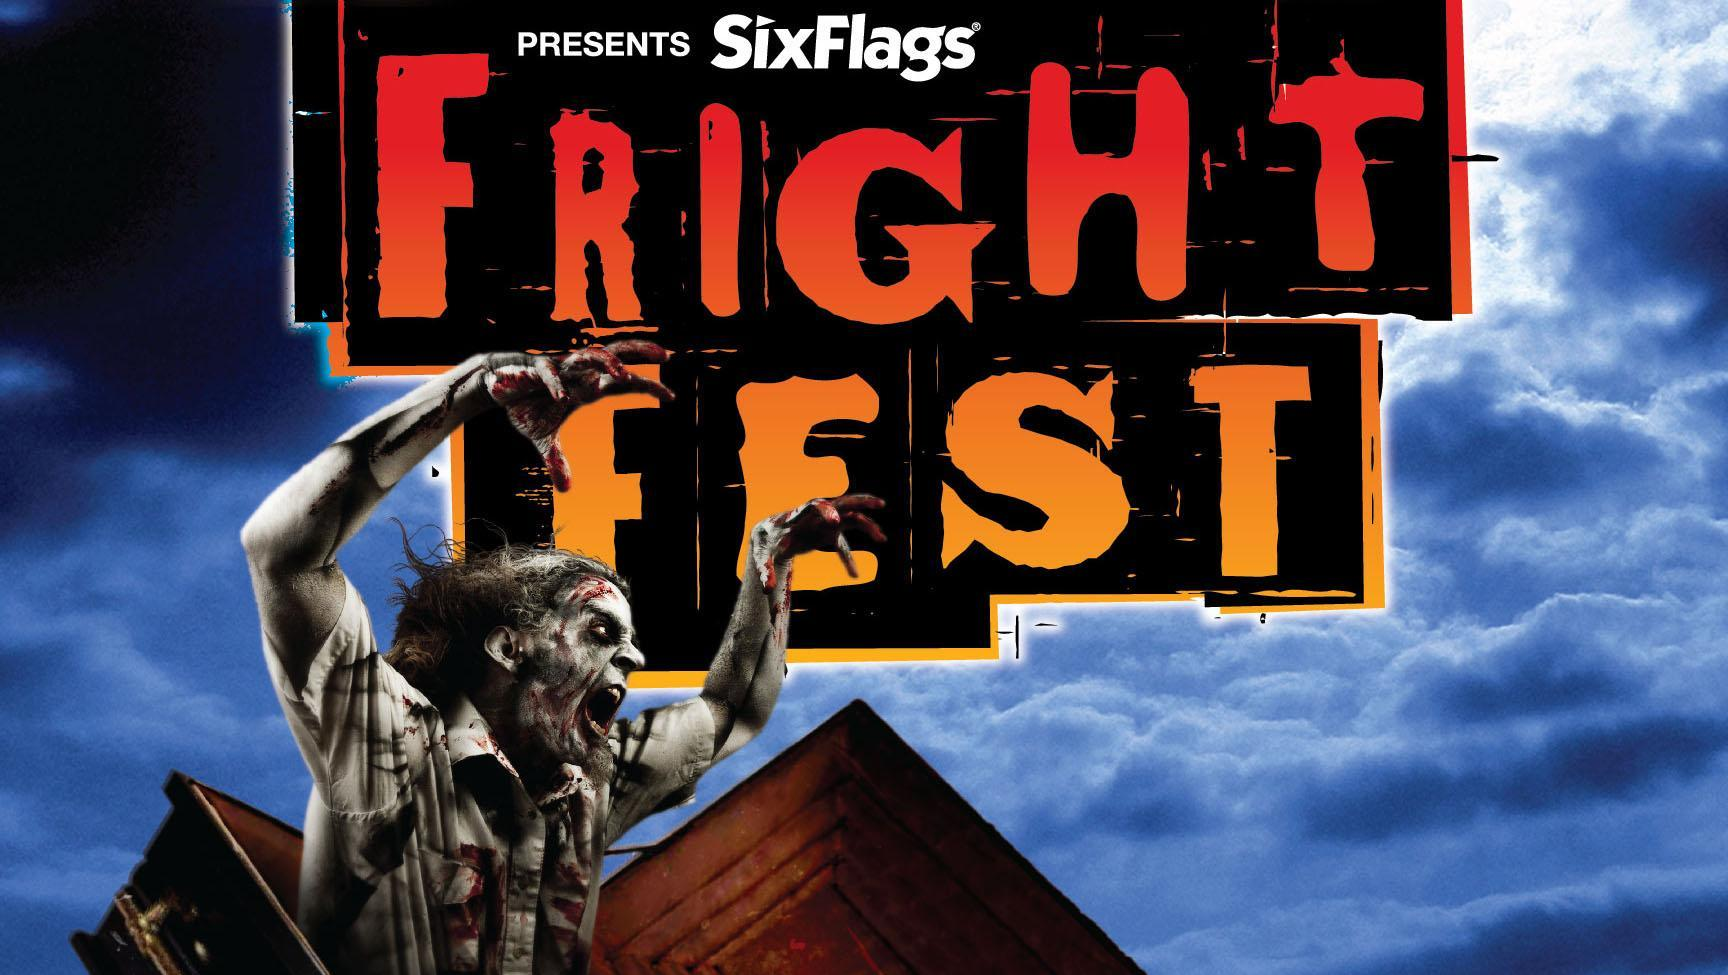 Fright Fest offers many park attractions for its visitors.